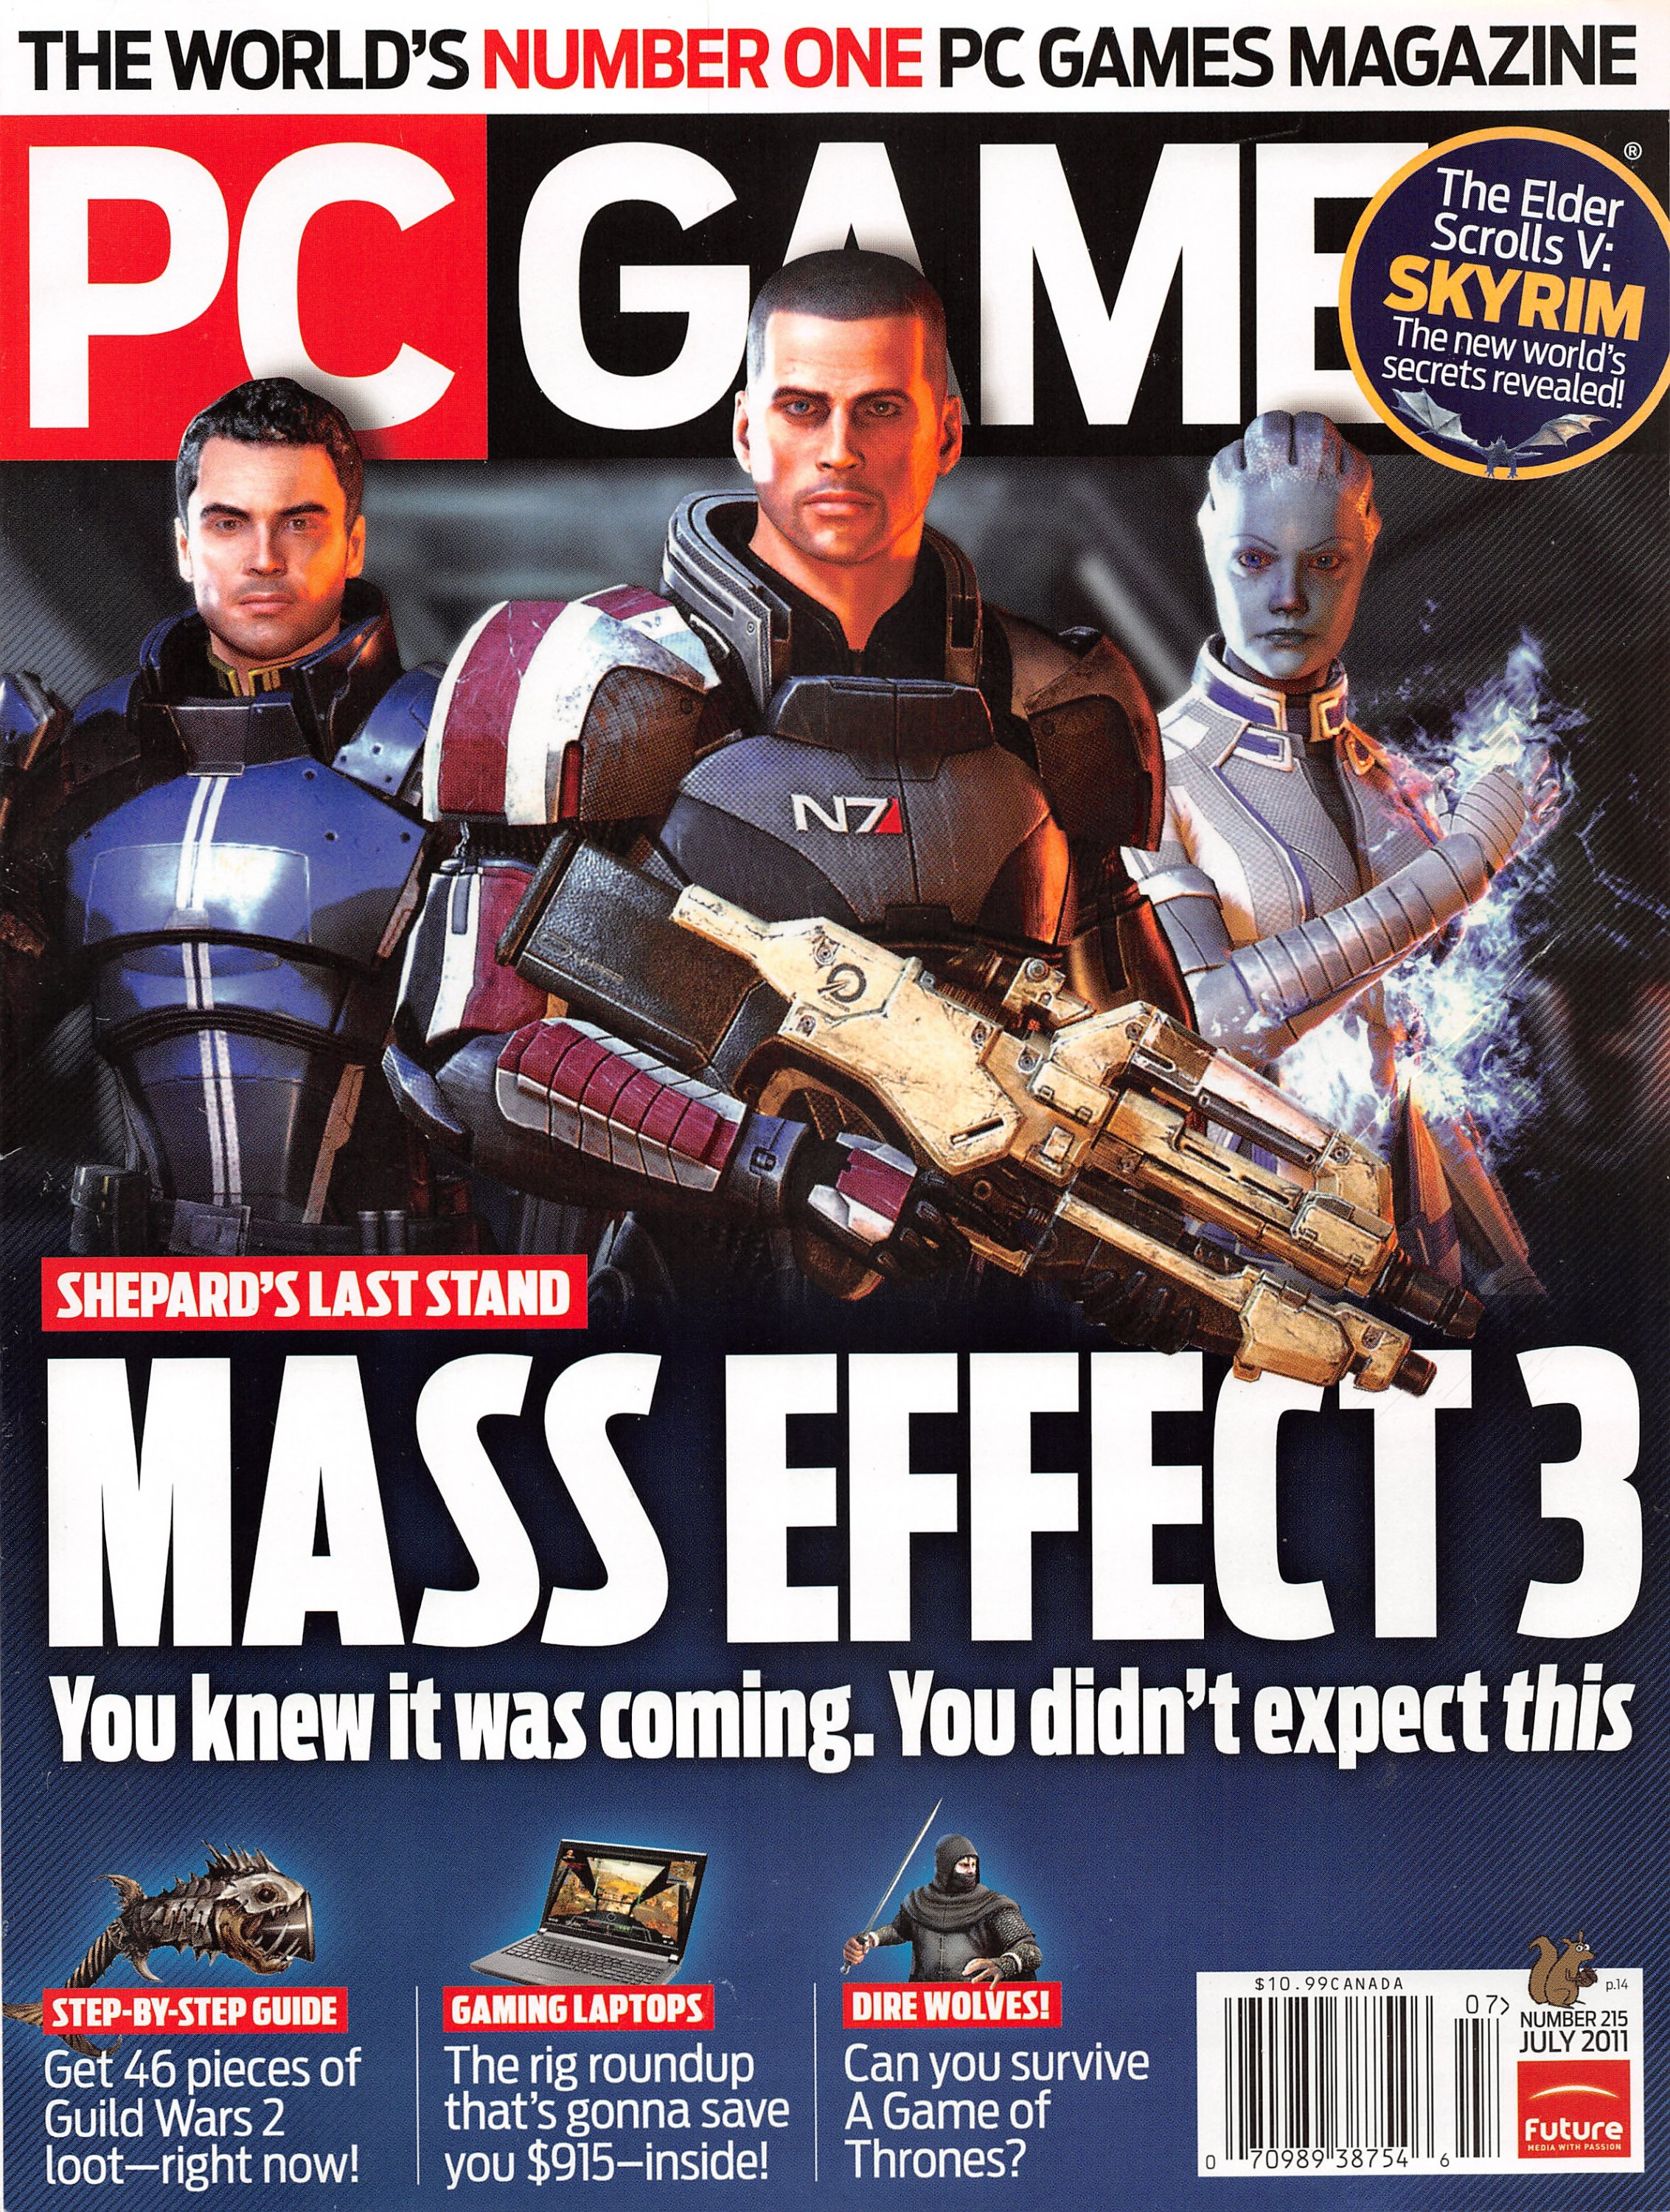 PC Gamer Issue 215 (July 2011)